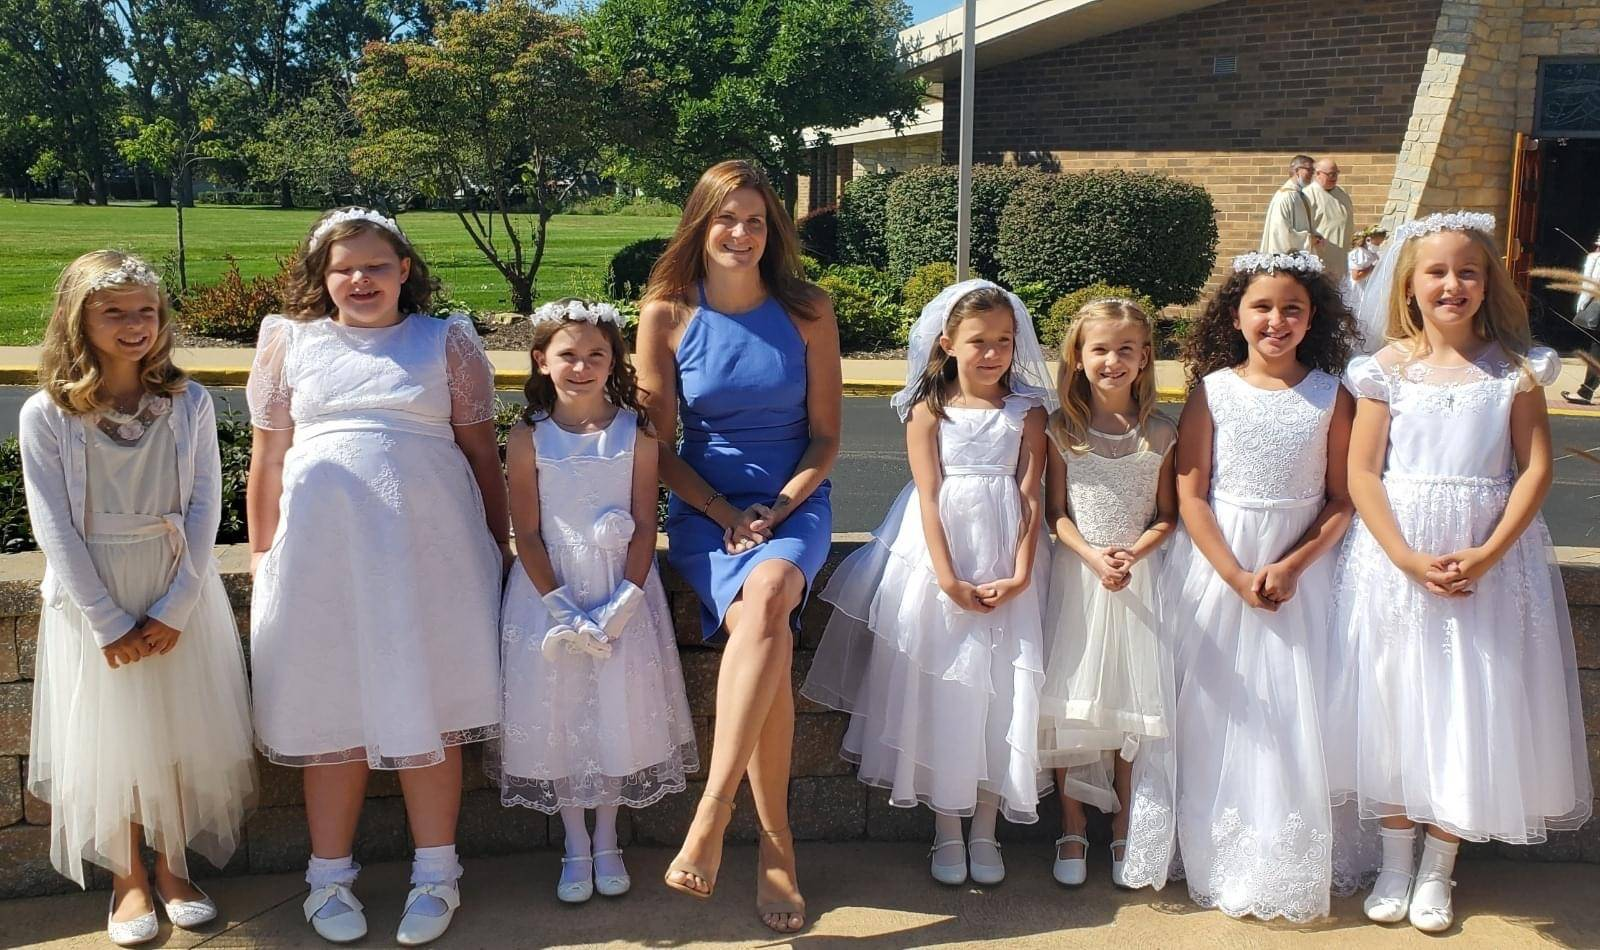 fall communion class delayed from COVID, teacher and girls in white dresses pose for a picture